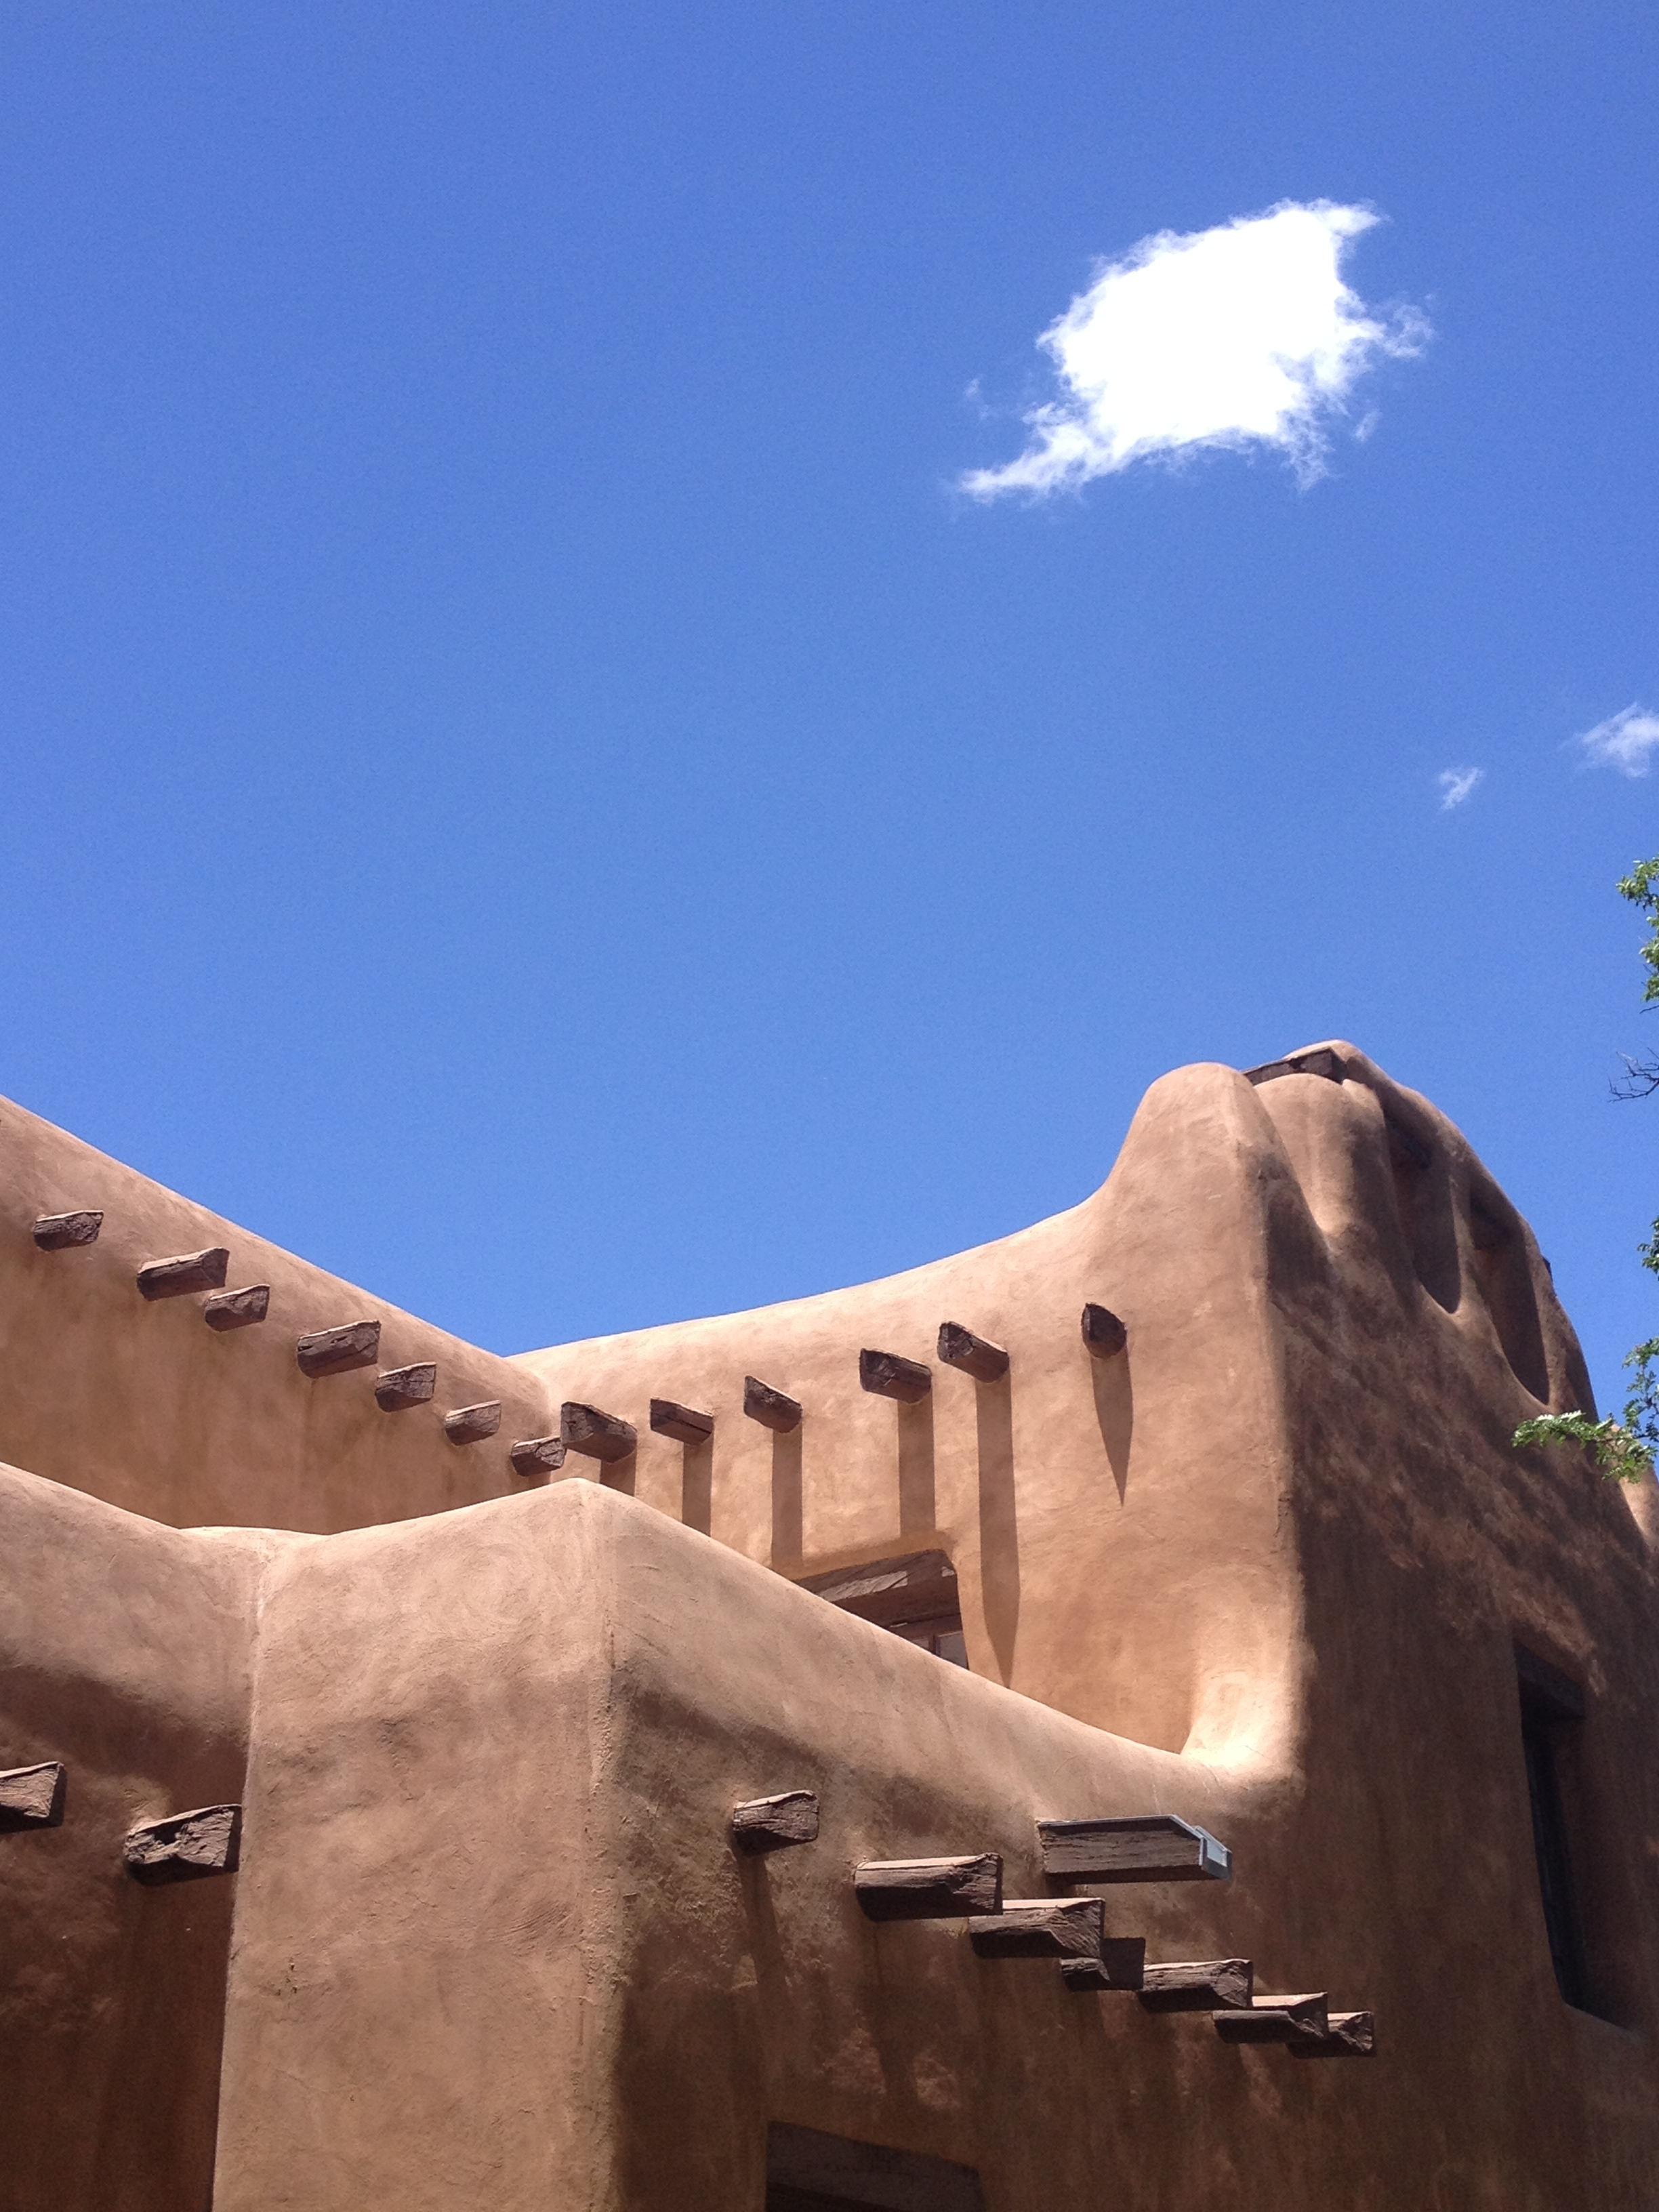 Surreal Santa Fe rounded architecture and perfect blue skies.